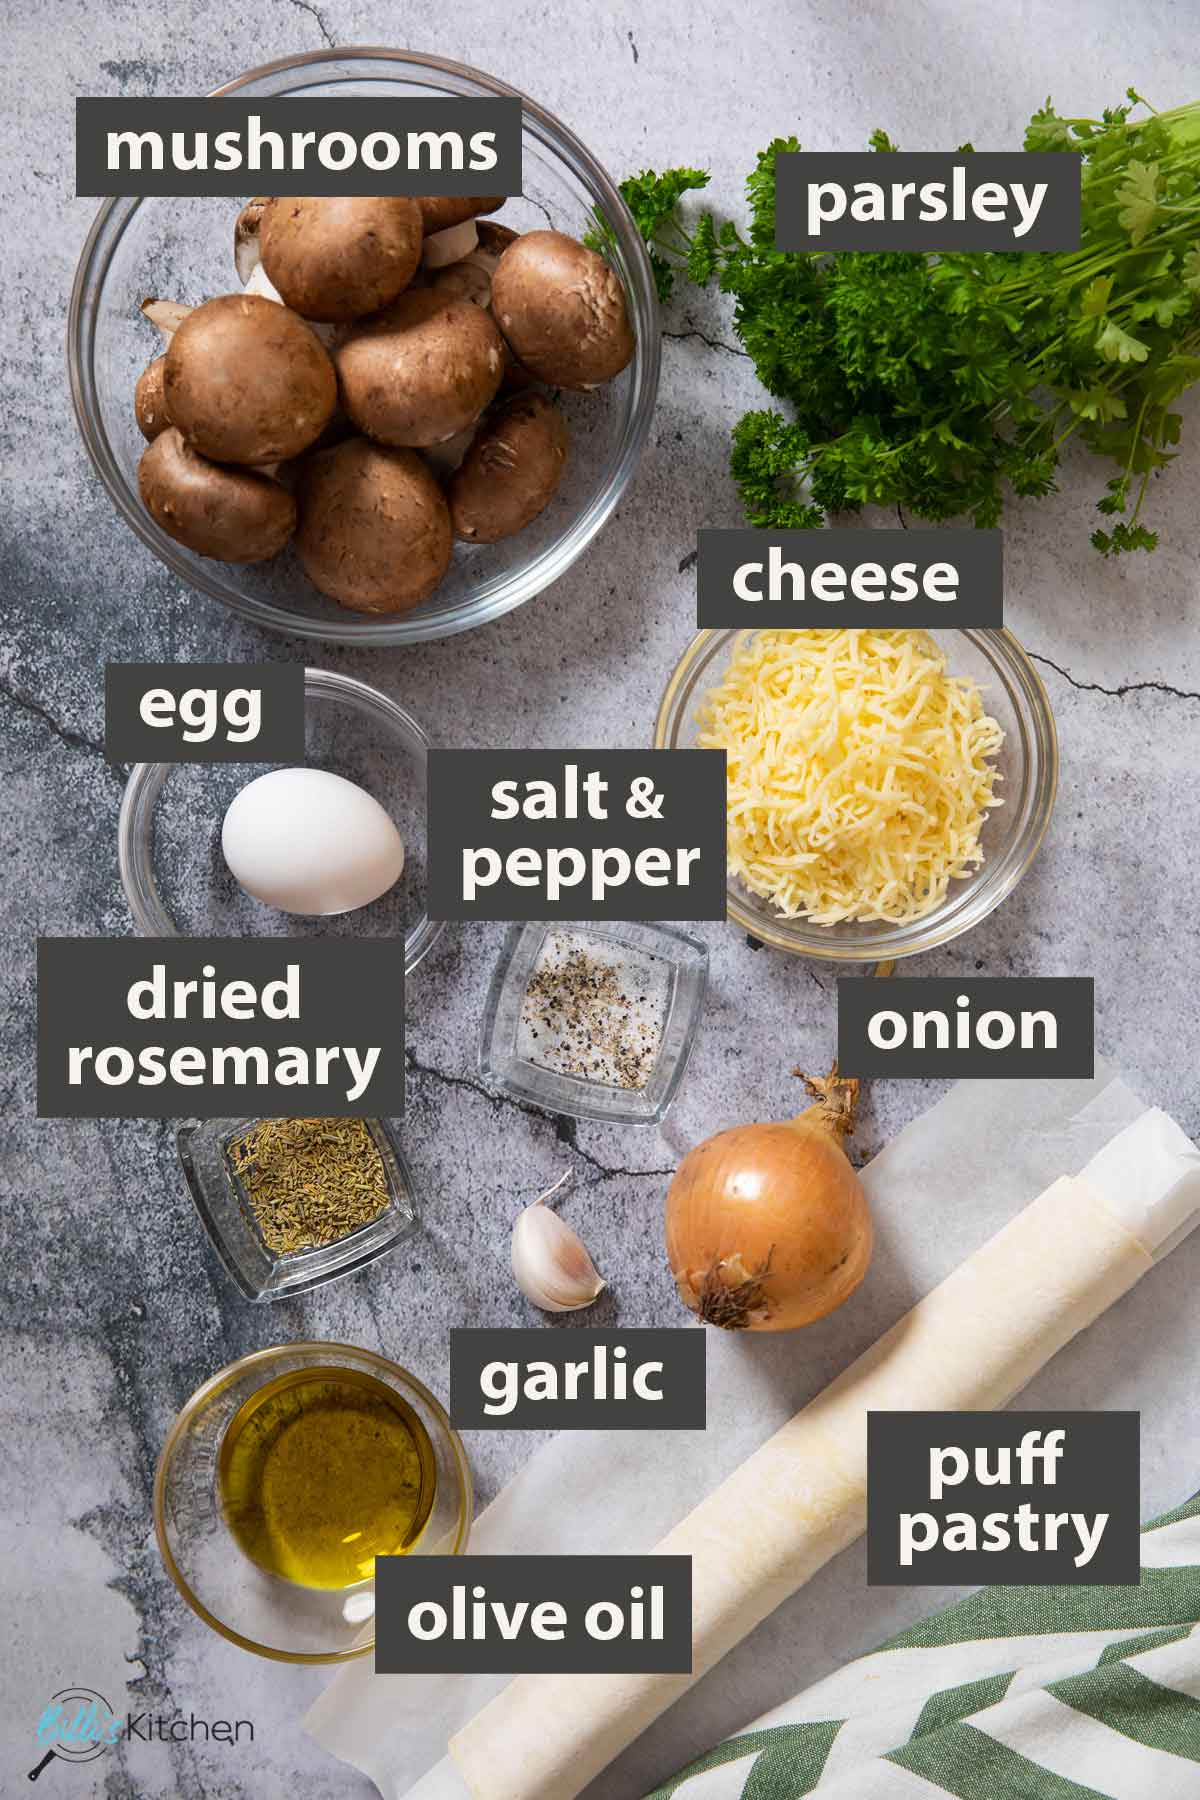 An image showing all the ingredients you need to prepare mushroom tart using puff pastry.